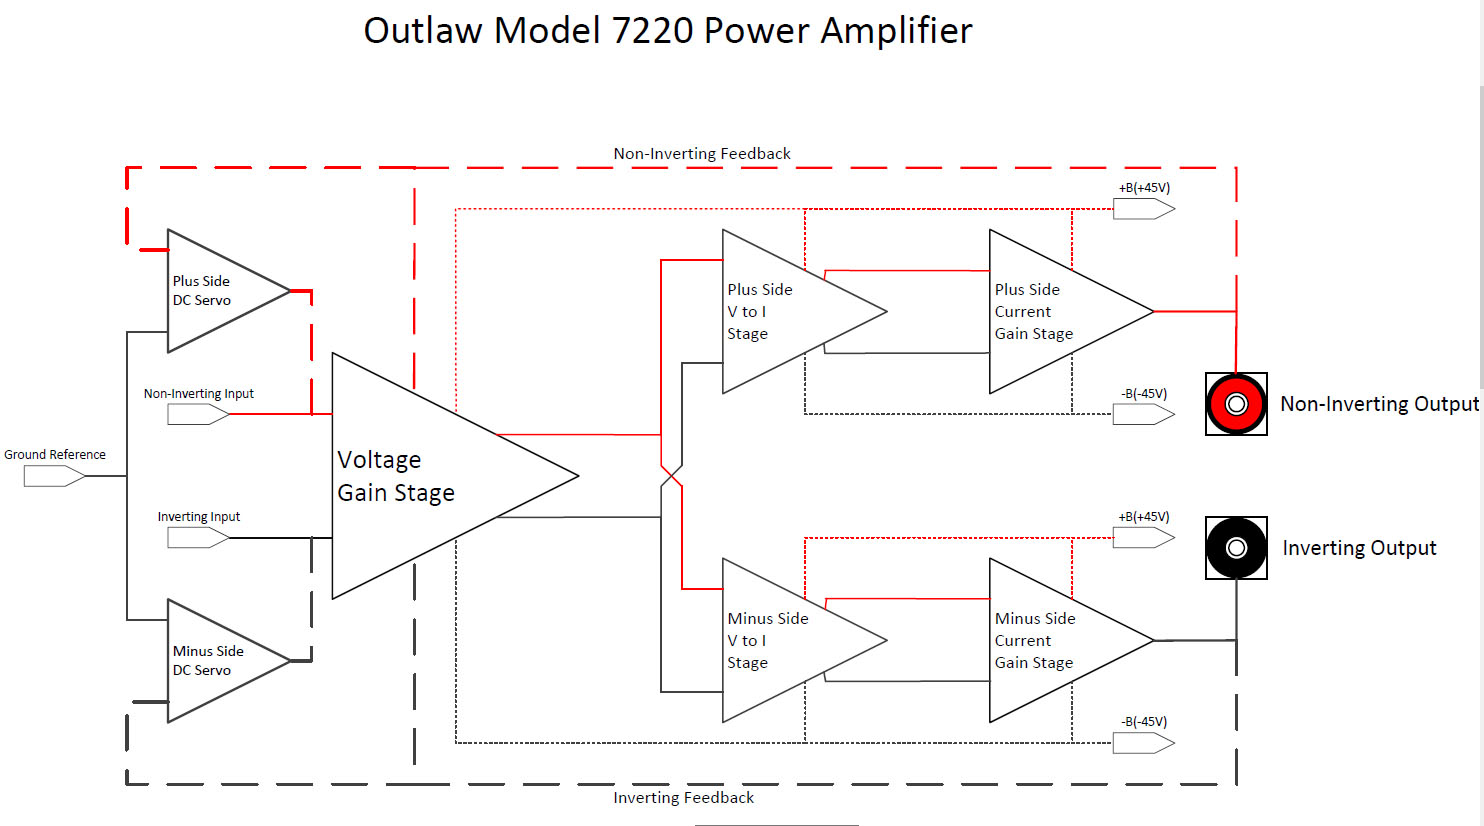 outlaw audio model 7220 7ch amplifier runs cool enough for mr